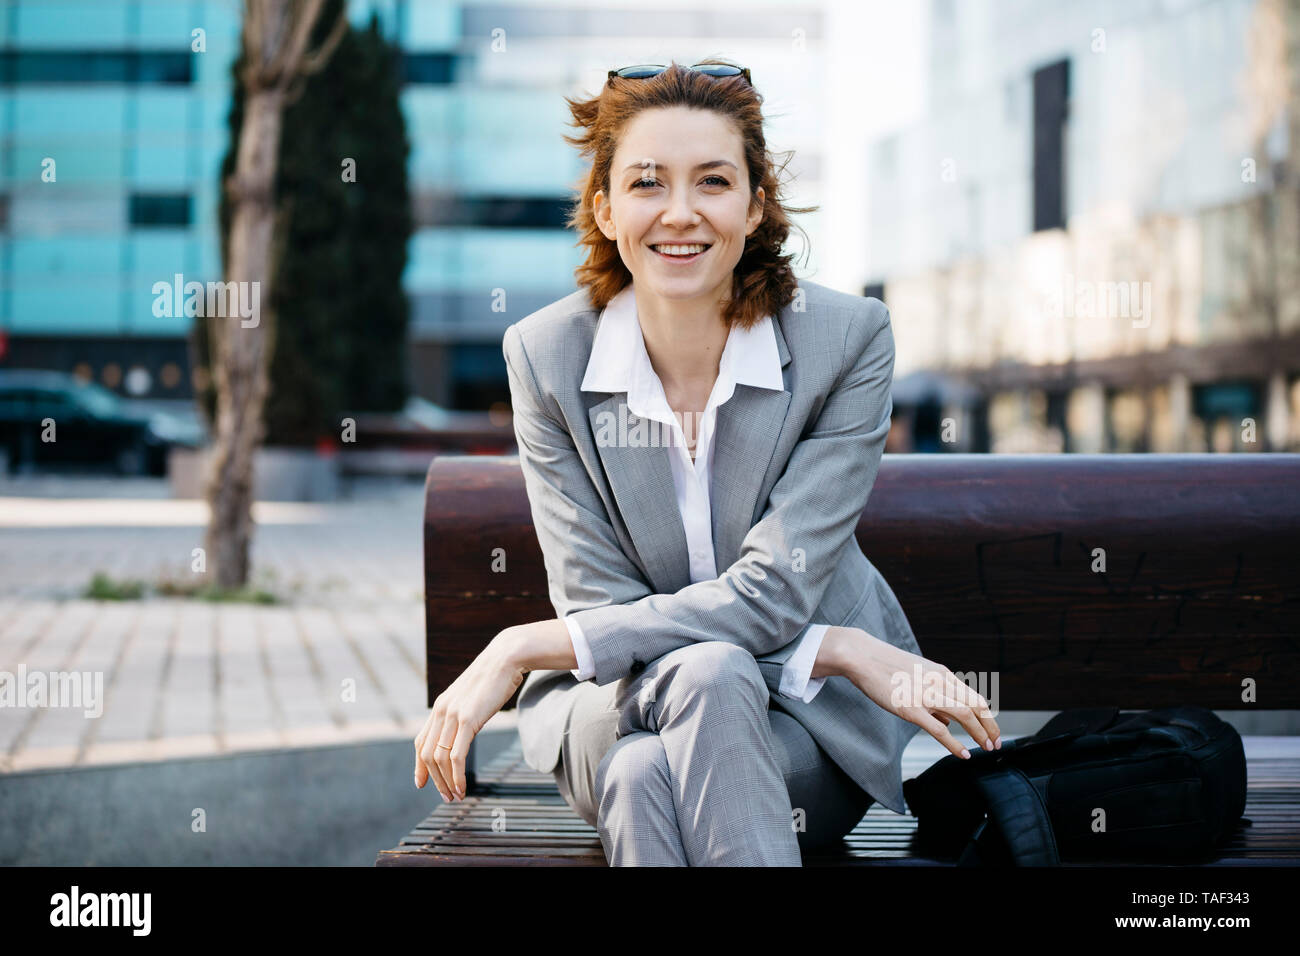 Young confident businesswoman sitting on a bench in the city, looking at camera - Stock Image